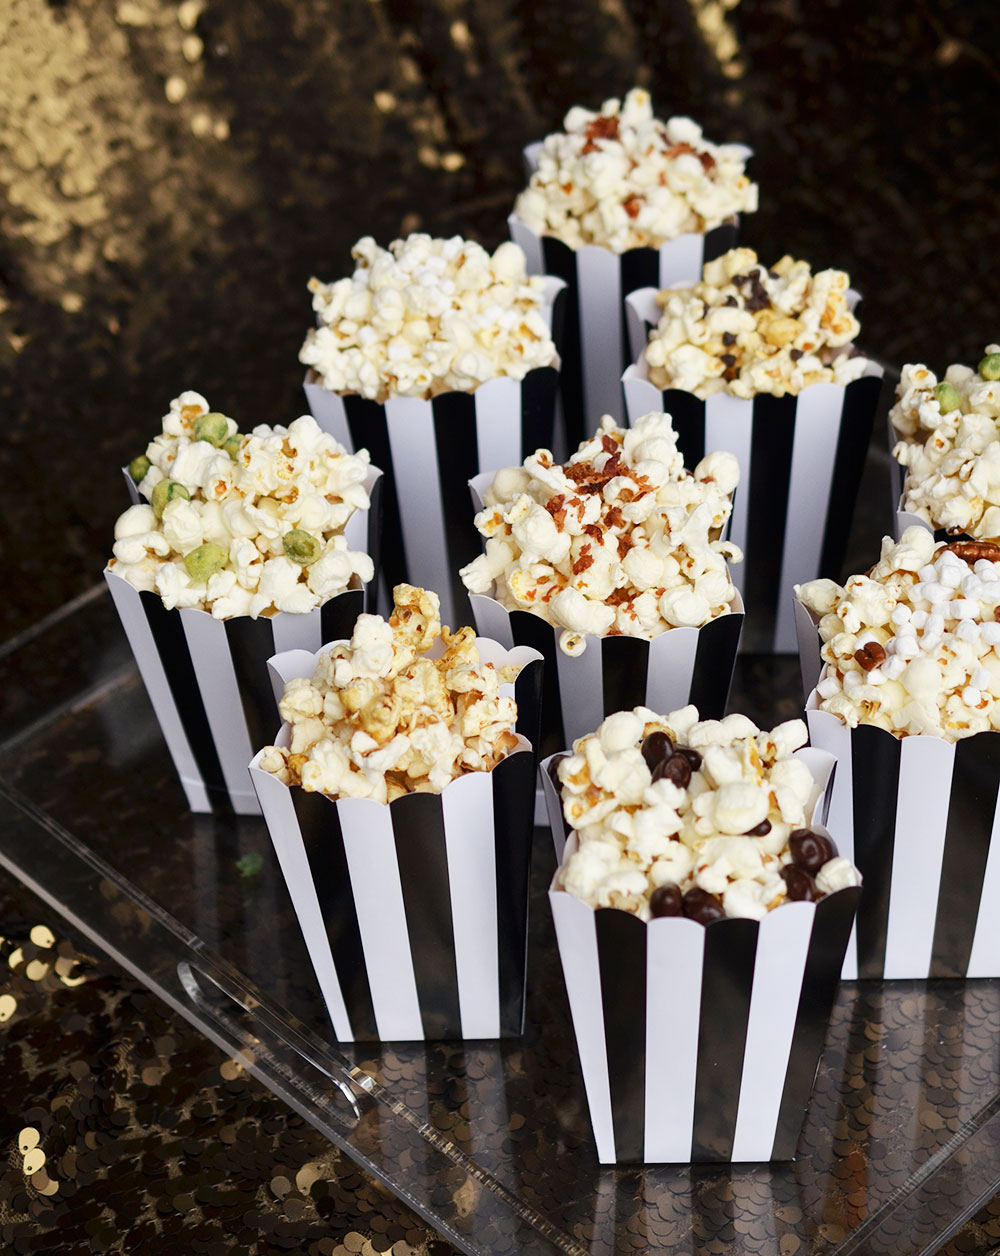 Ali Hedin | Easy Popcorn Oscar Party